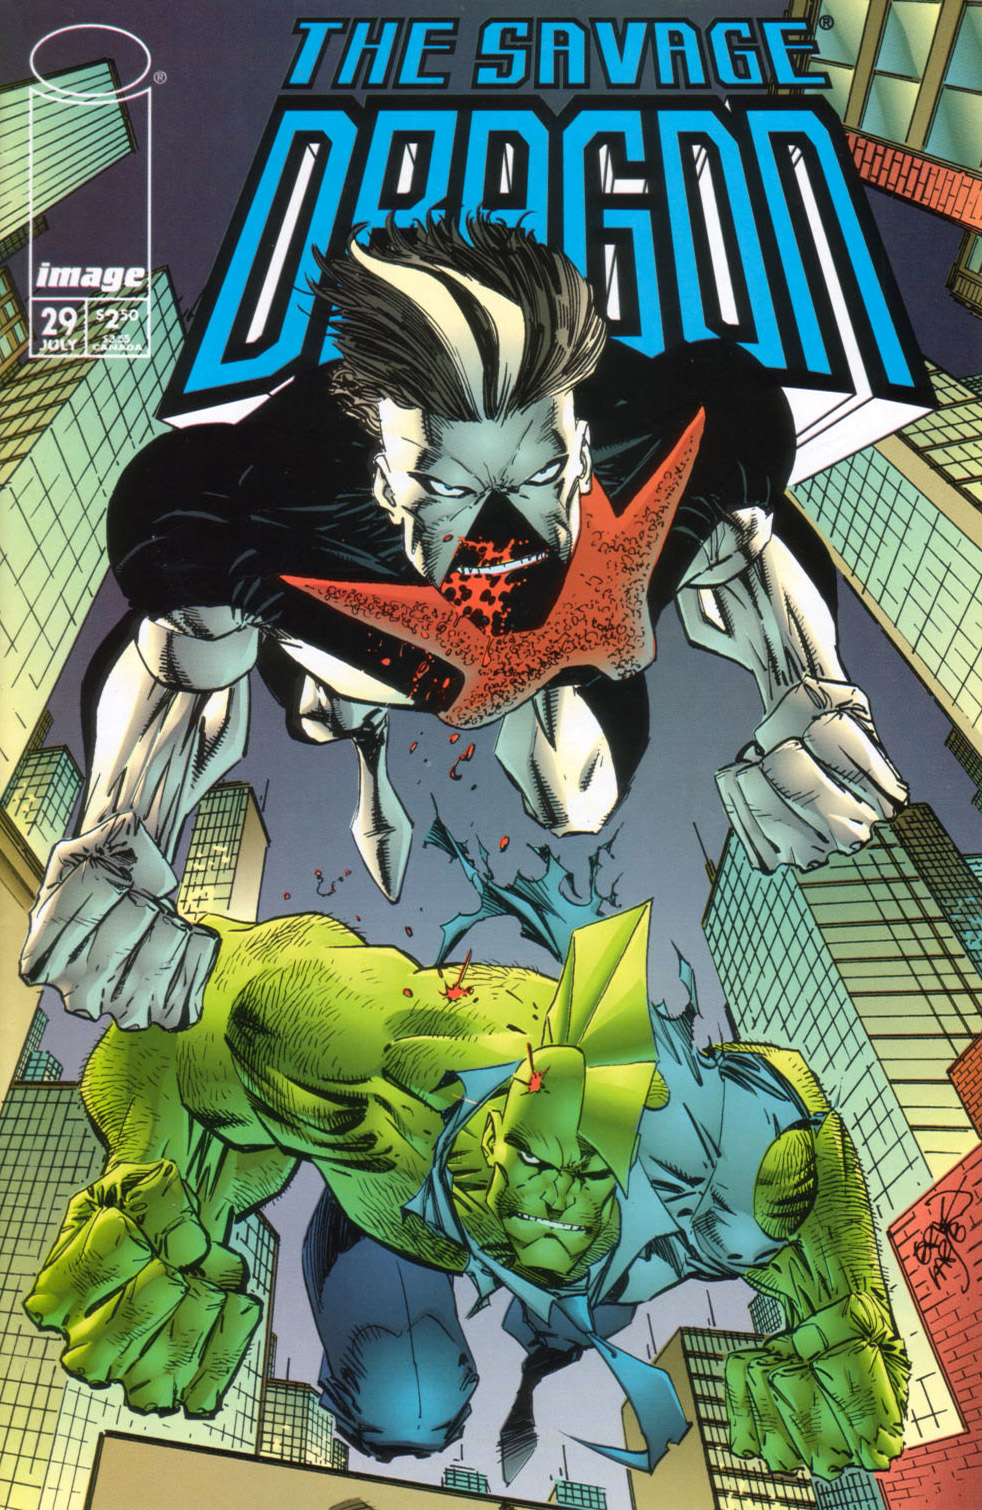 Cover Savage Dragon Vol.2 #29